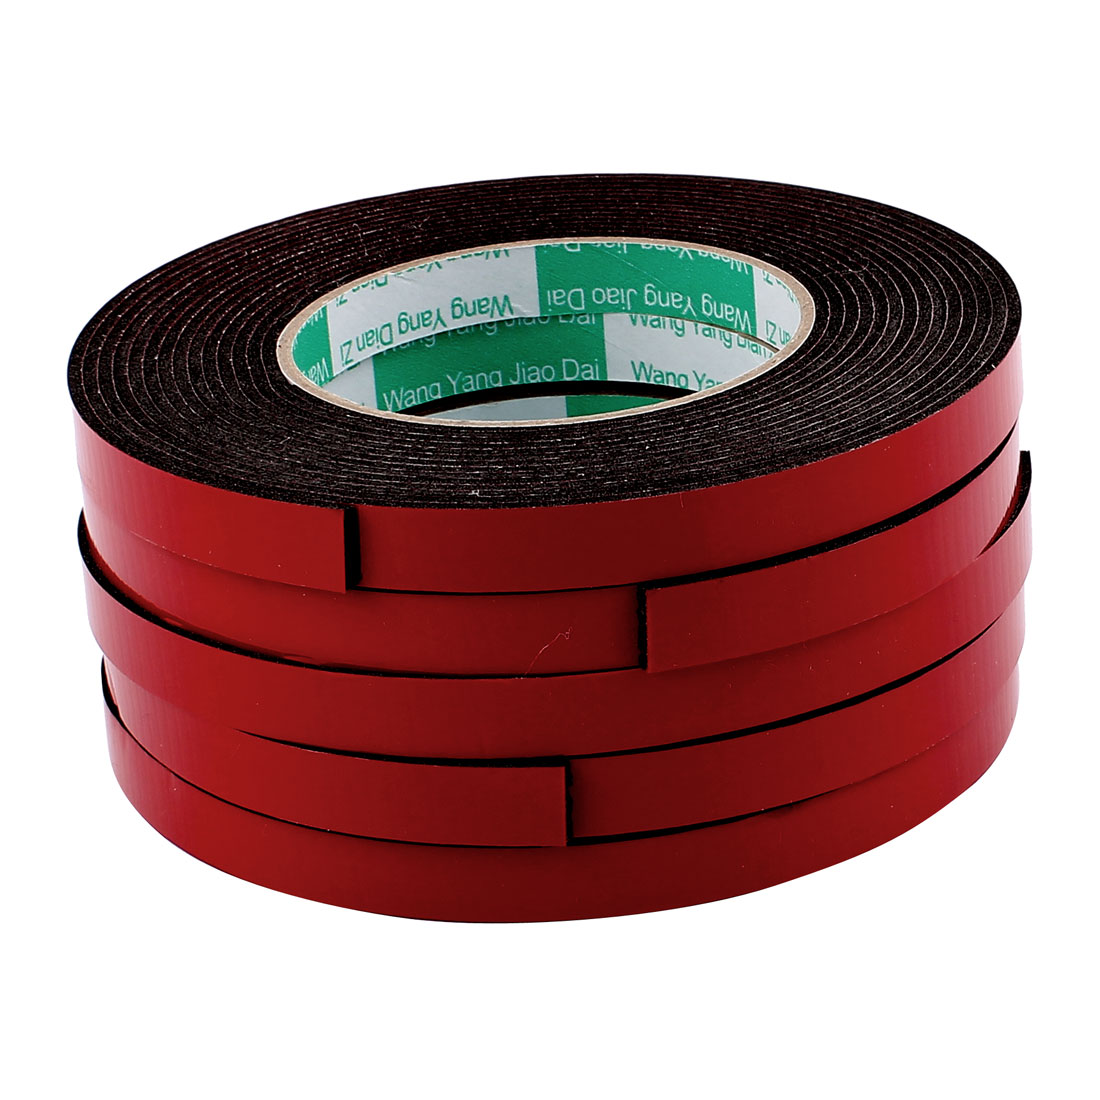 5 Pcs 1.2CM Width 5M Length 2MM Thick Dual Sided Sealing Shockproof Sponge Tape